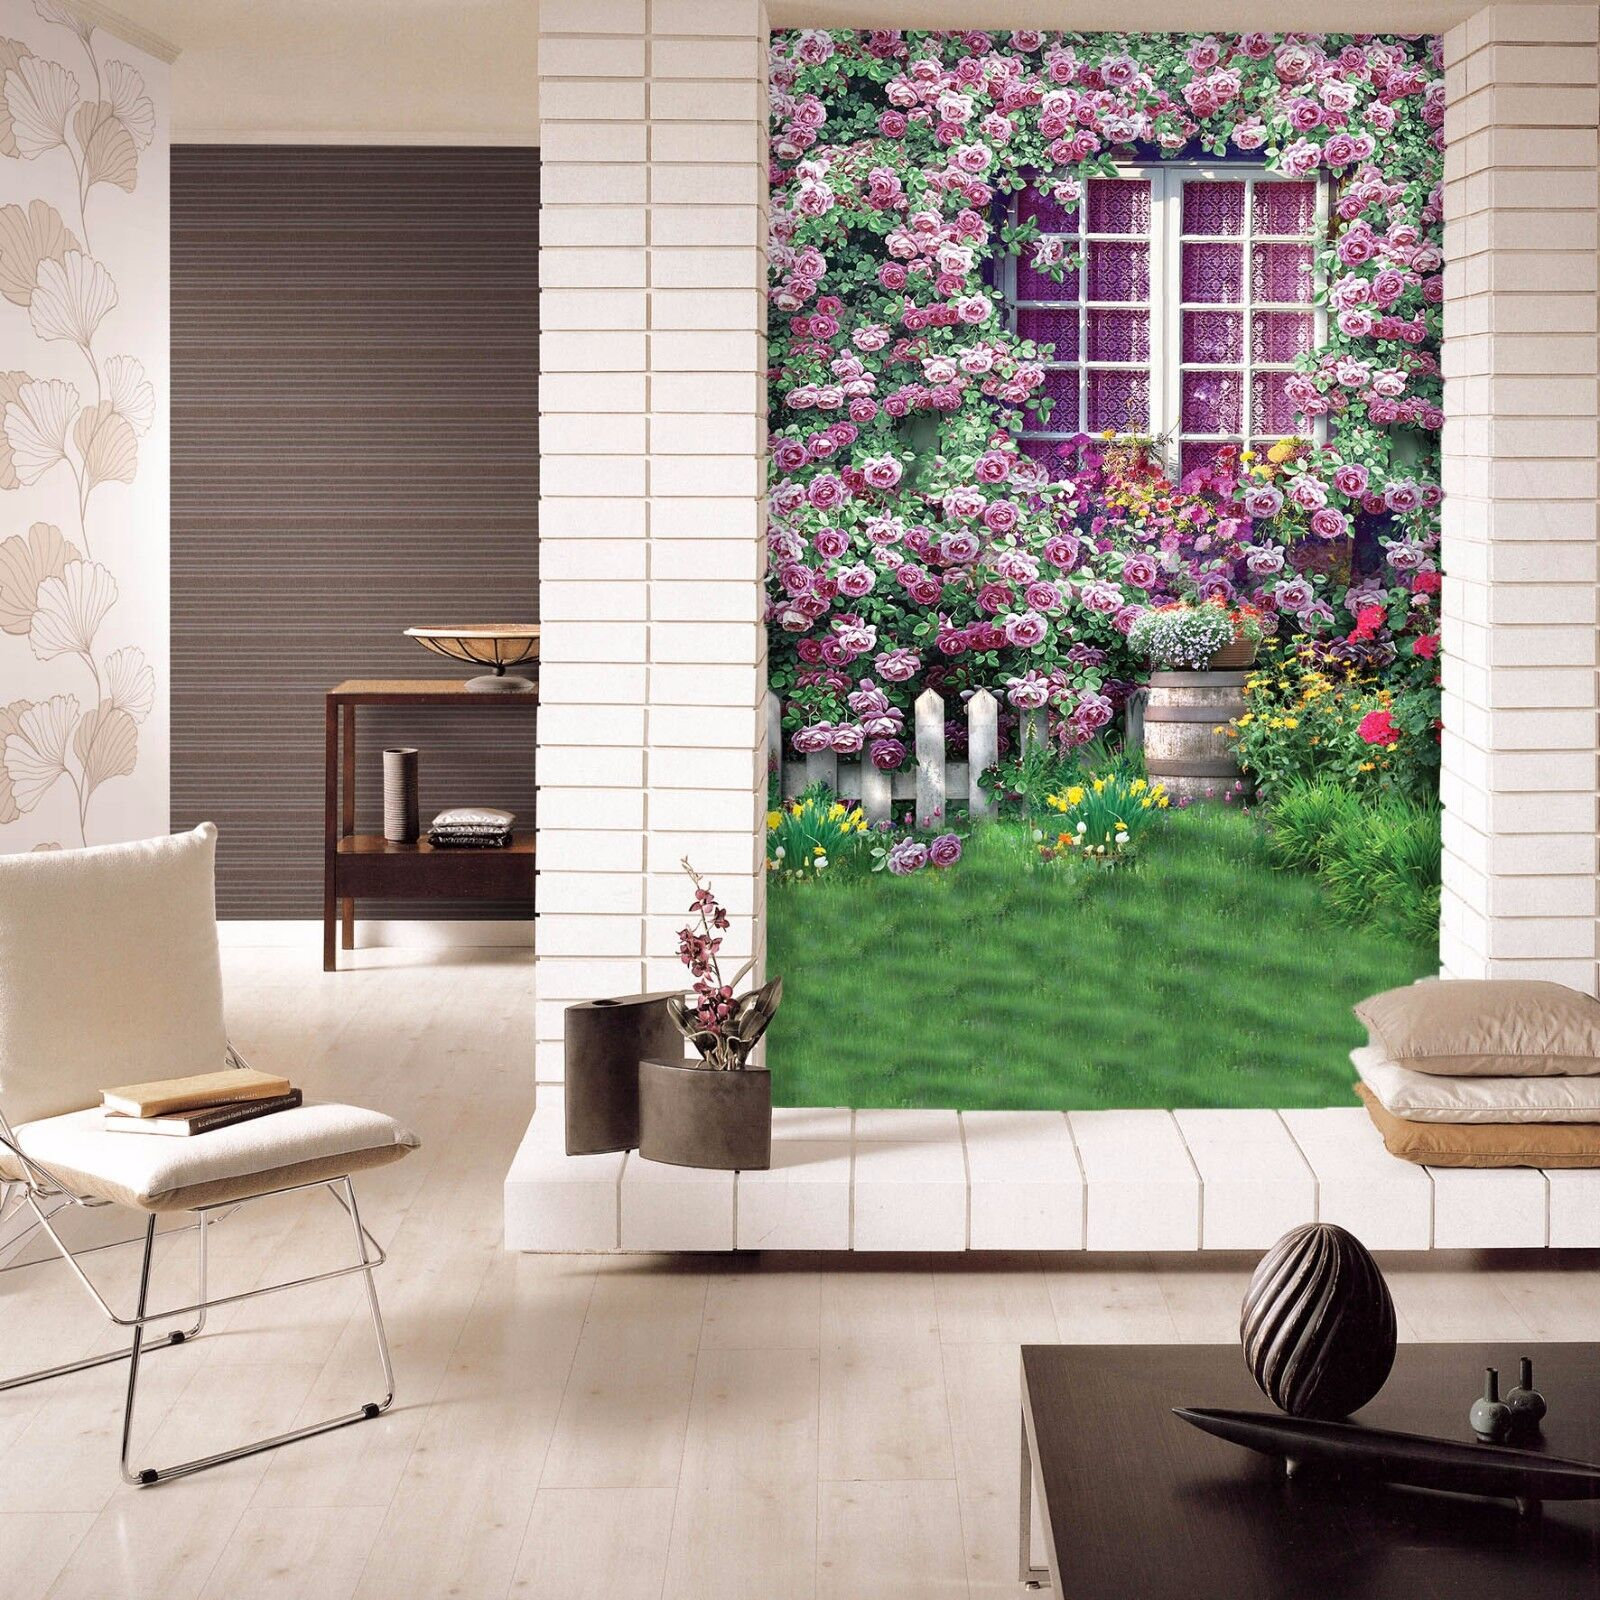 3D Lawn Flowers 9079 Wall Paper Wall Print Decal Wall Deco Wall Indoor Murals